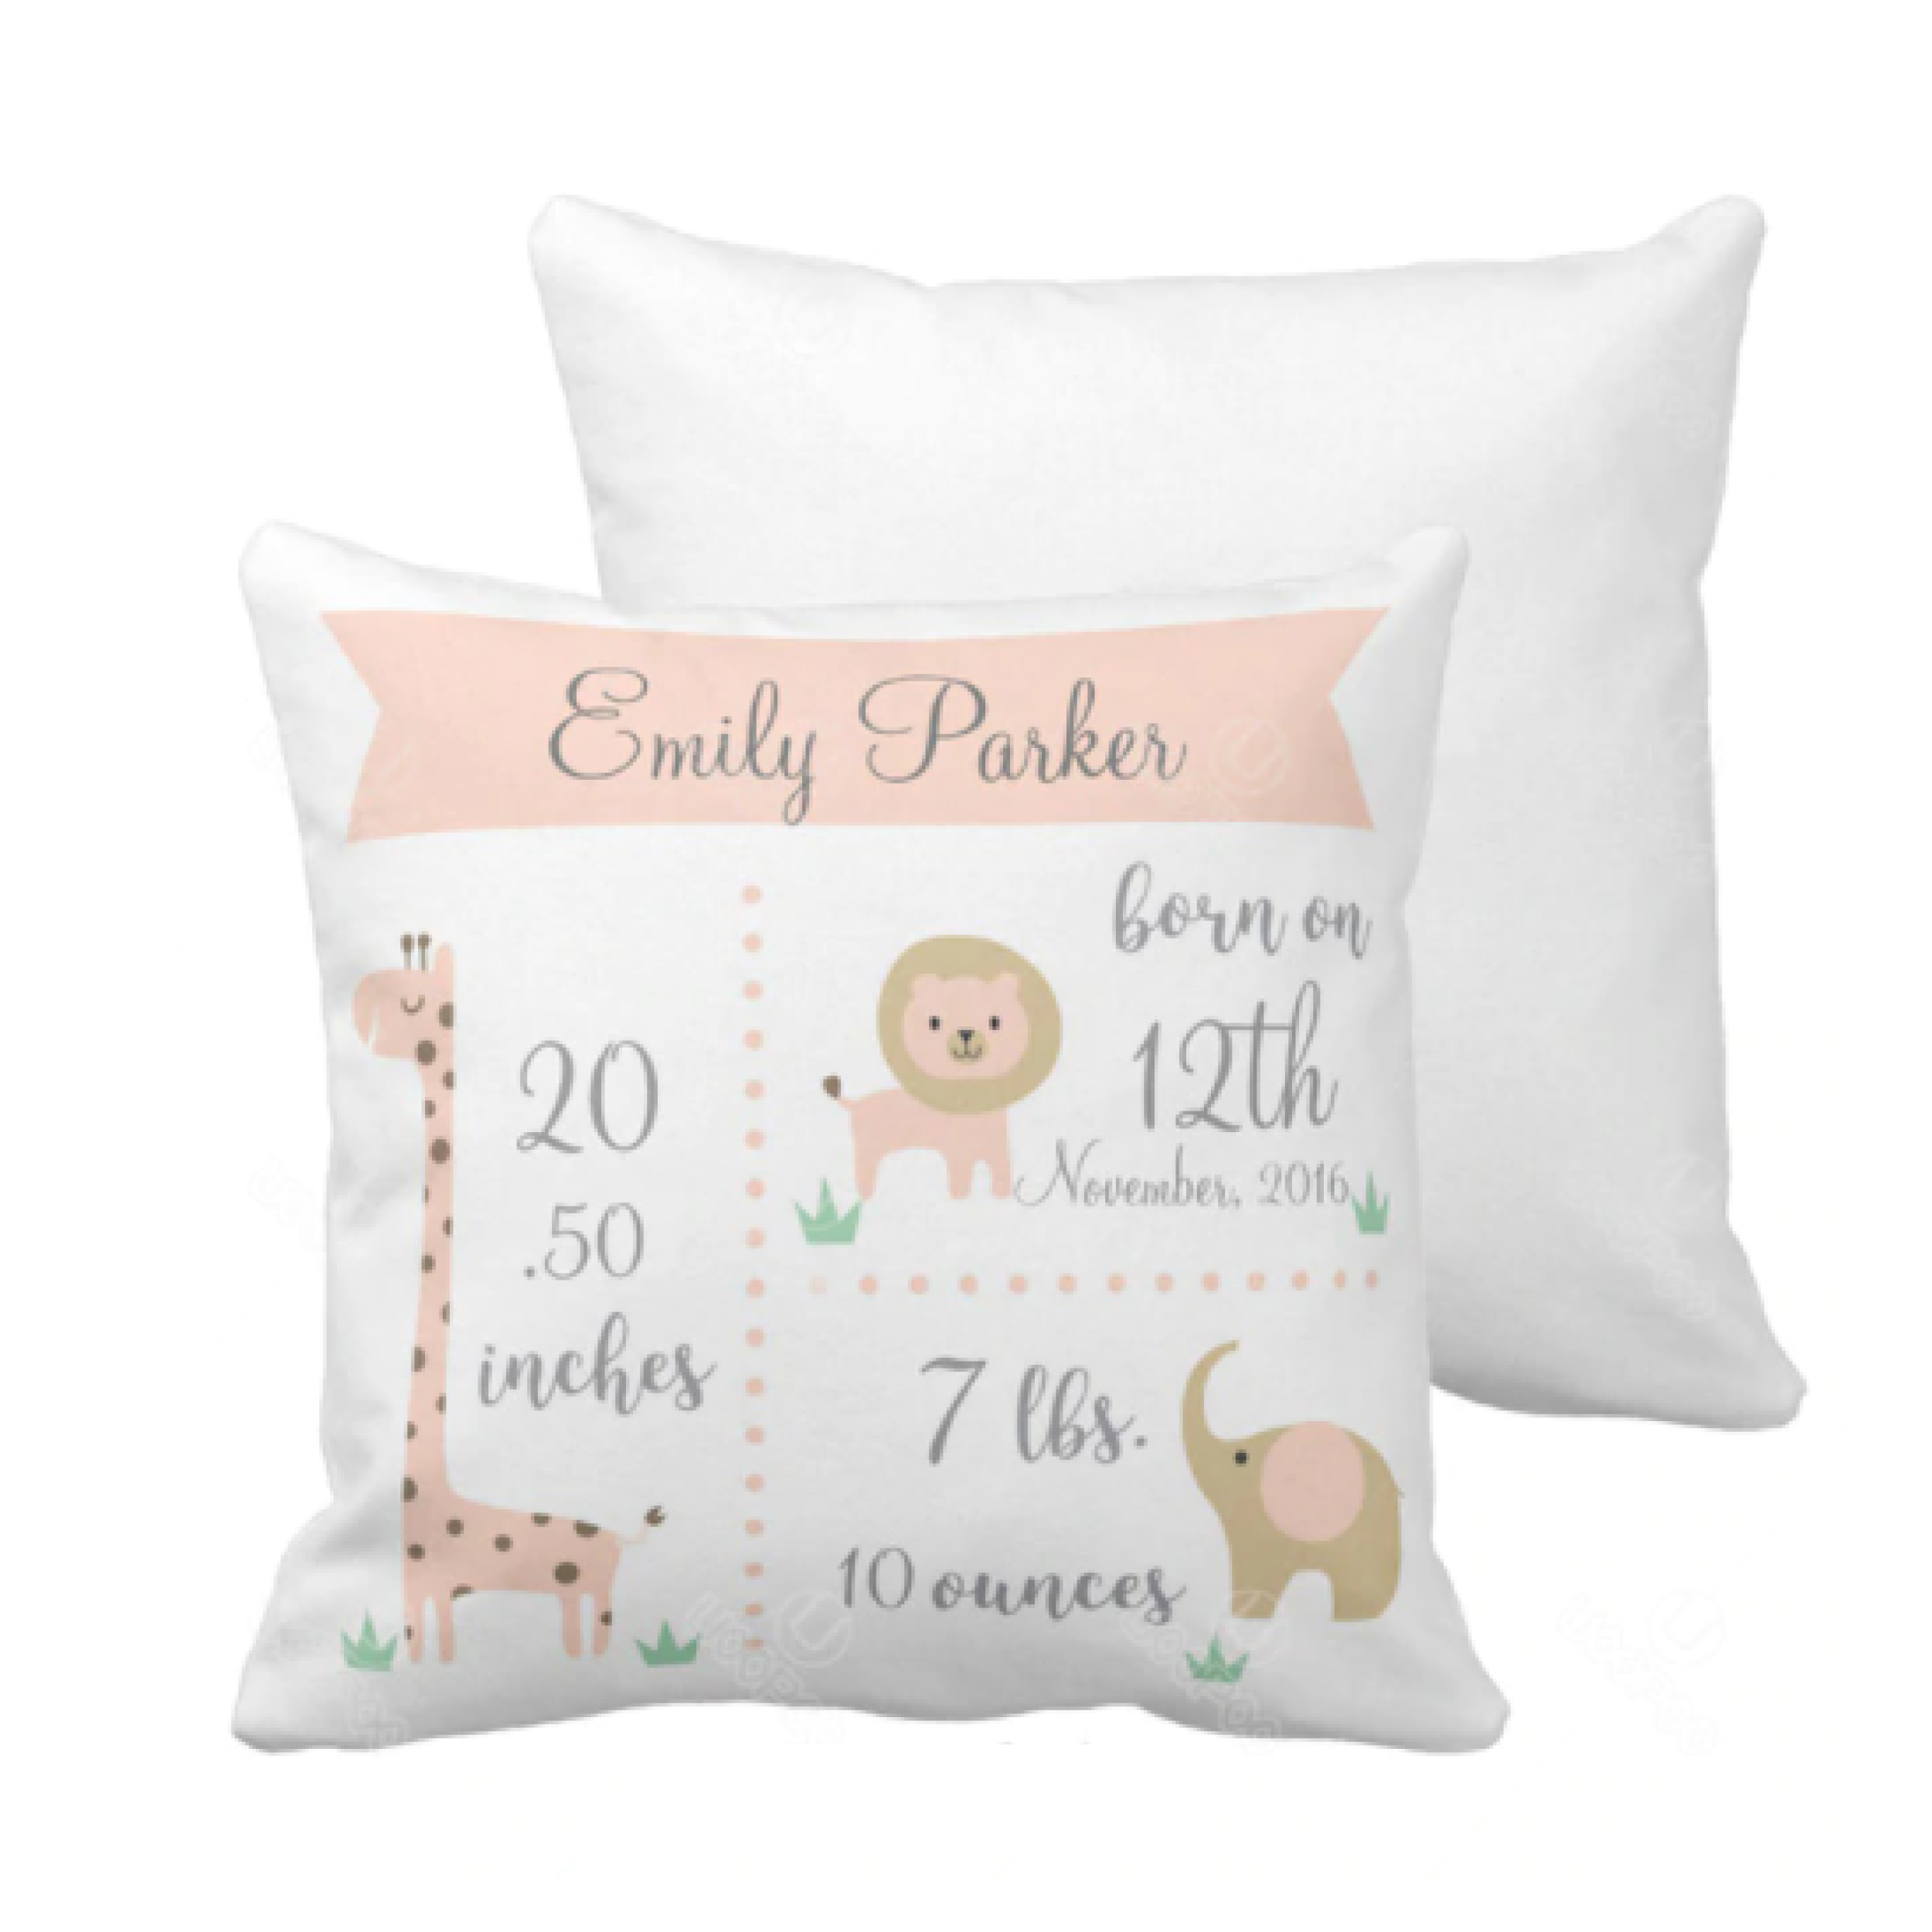 designed cushion covers customisable2